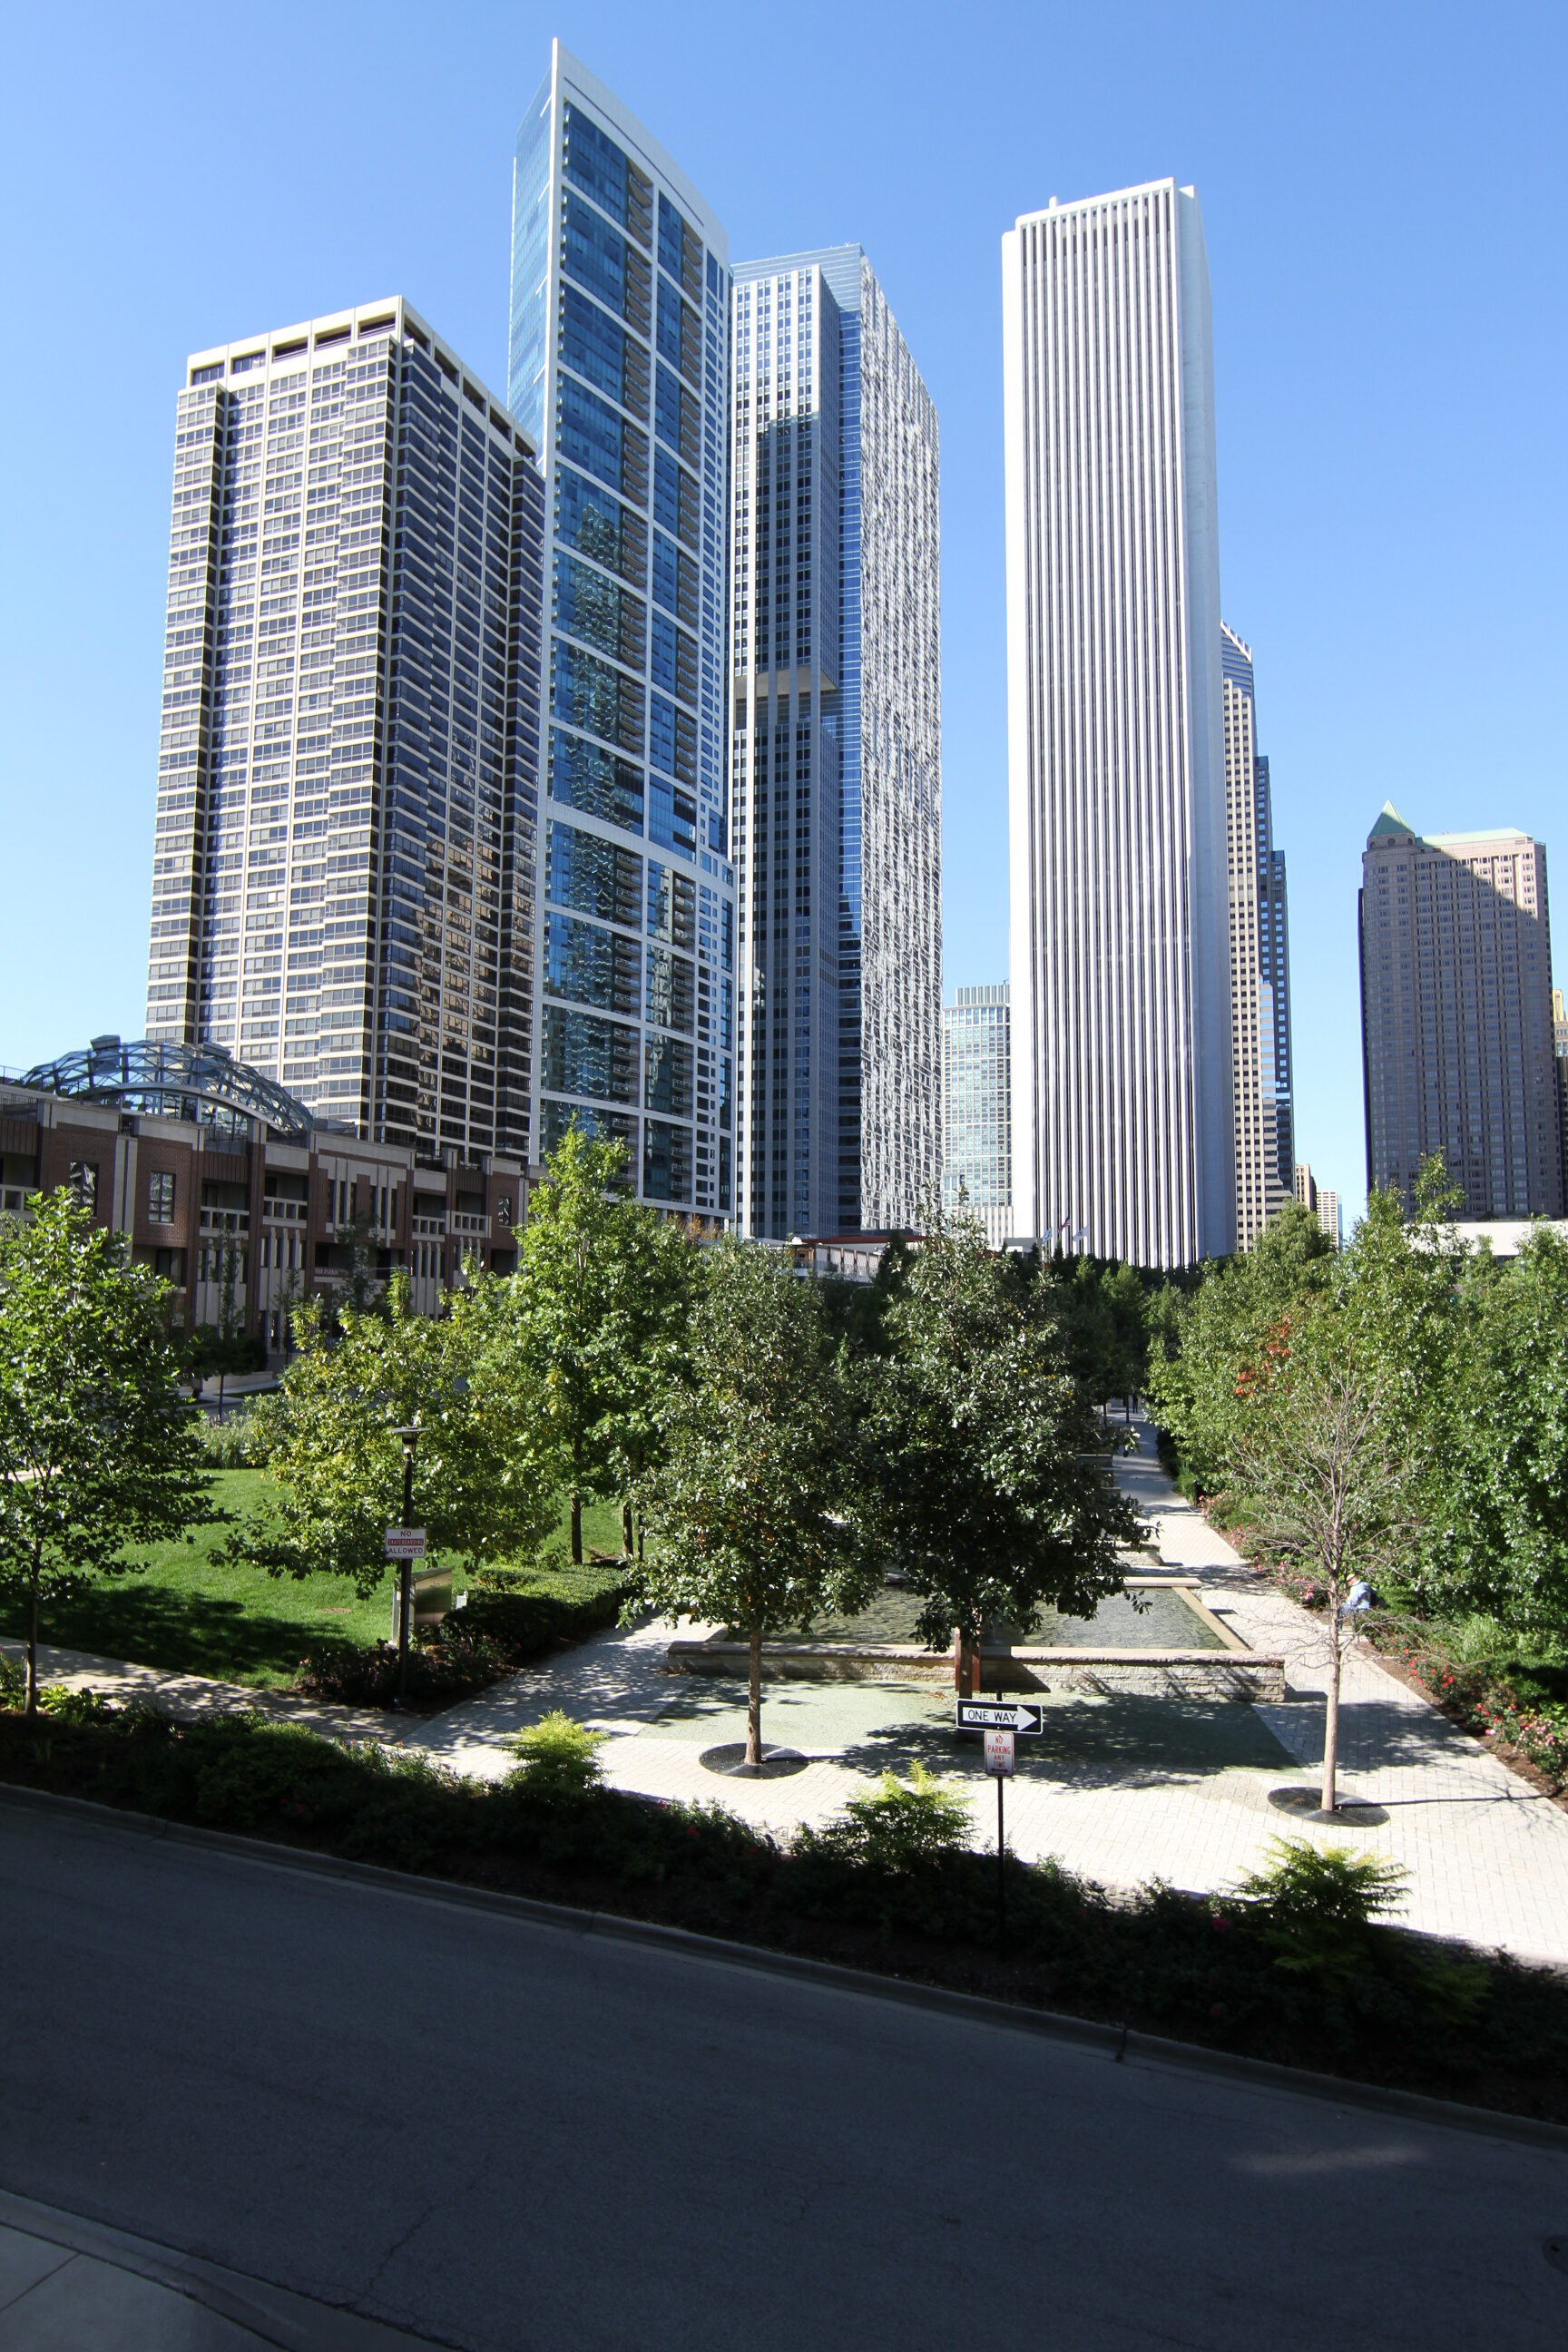 City views in the park